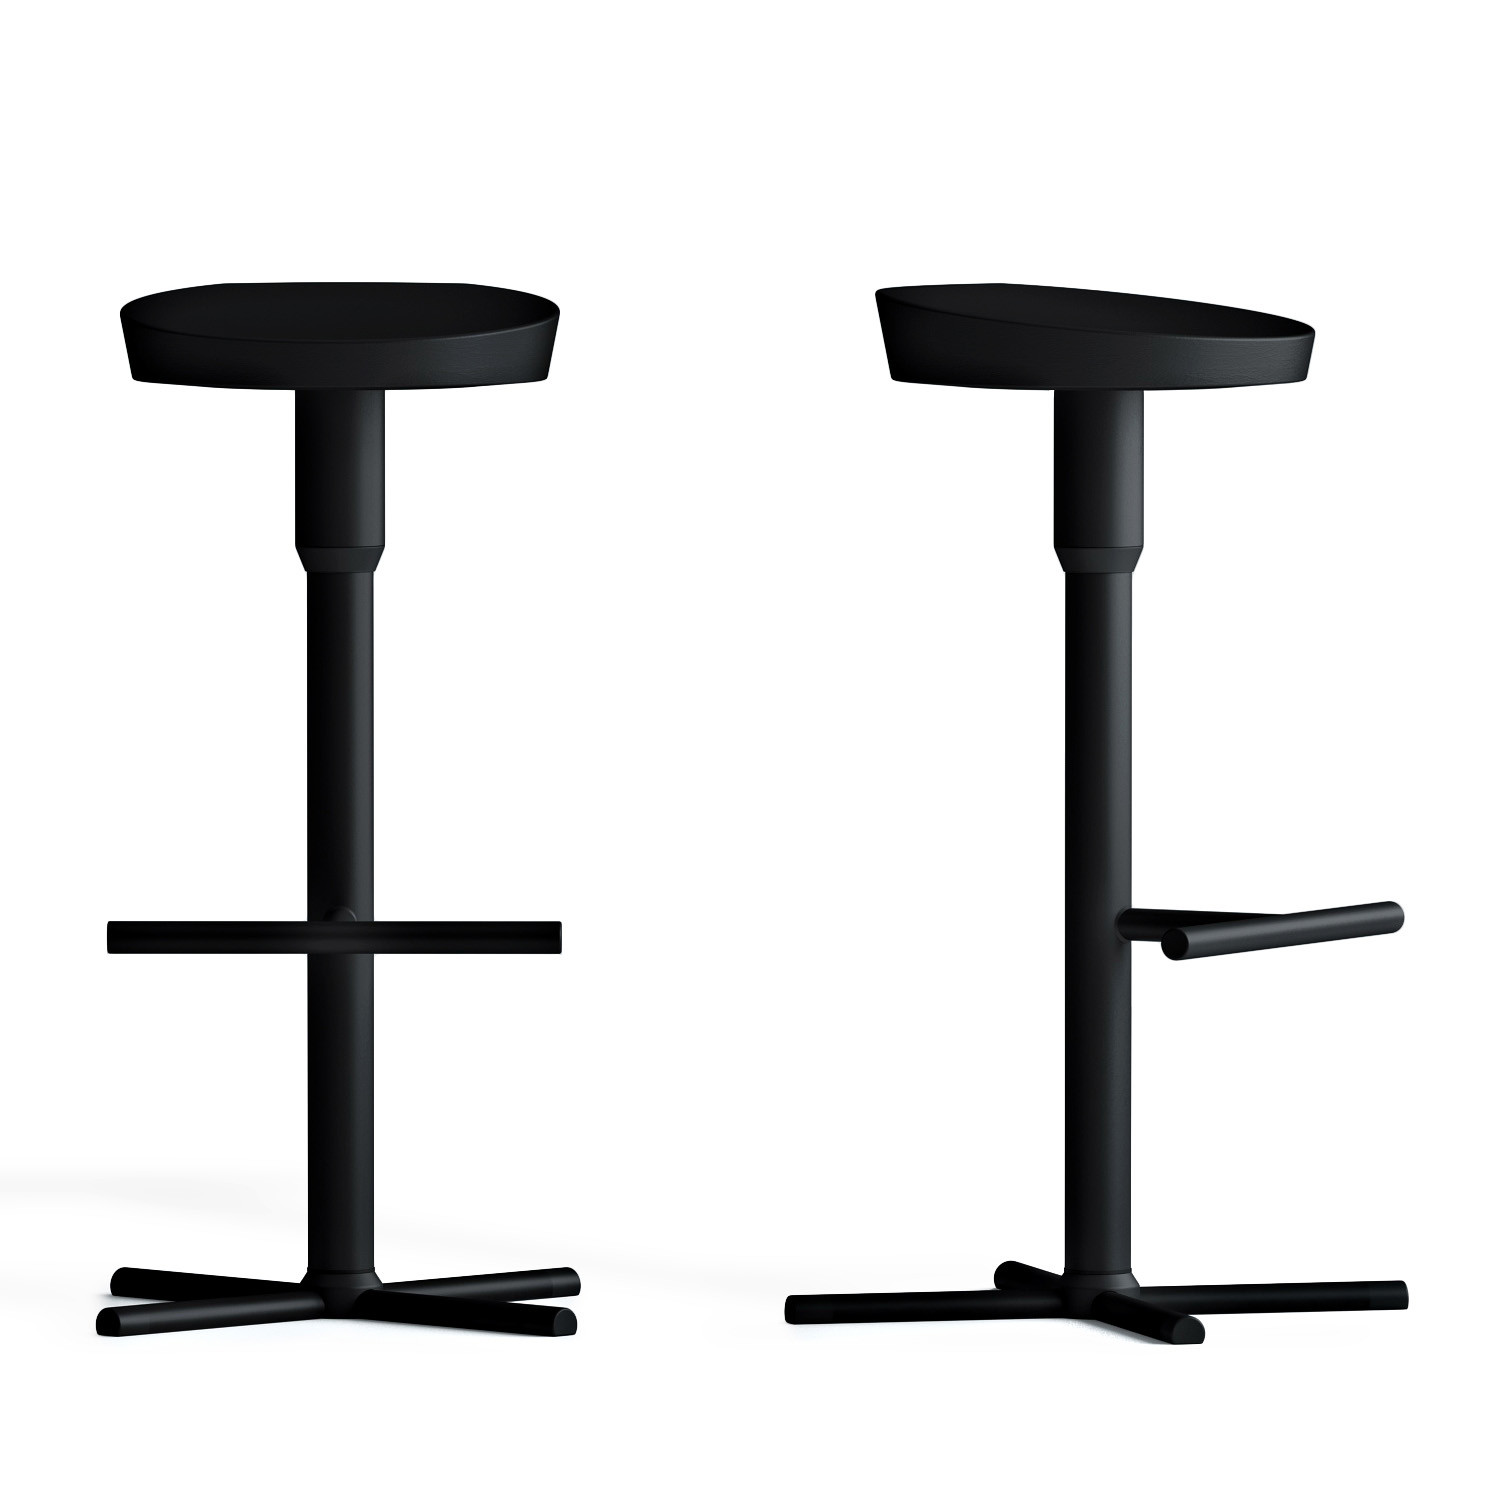 Nudo Barstools Contemporary Barstools Apres Furniture : nudo barstool 03 from www.apresfurniture.co.uk size 1500 x 1500 jpeg 81kB